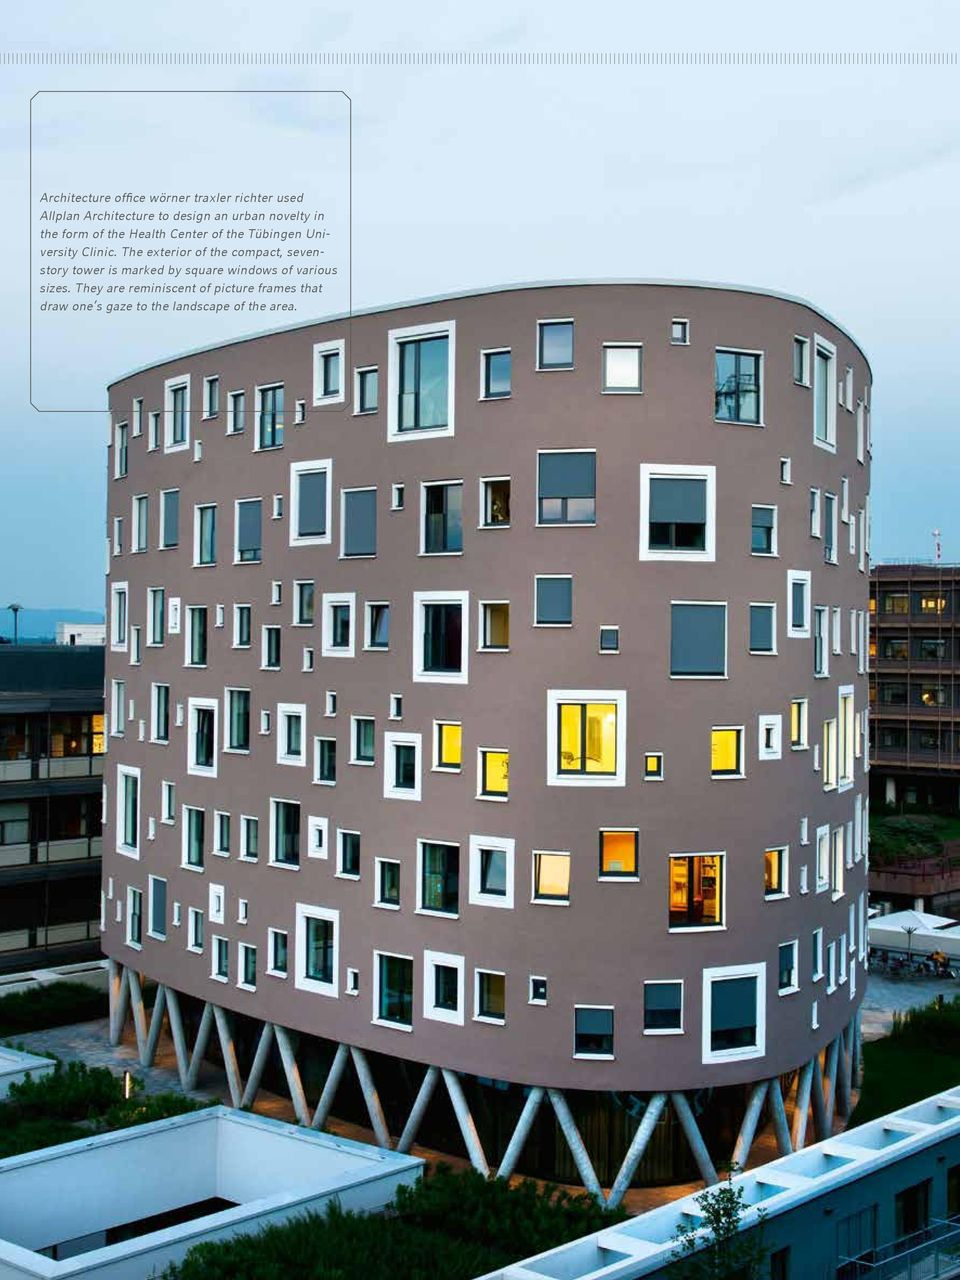 The exterior of the compact, sevenstory tower is marked by square windows of various